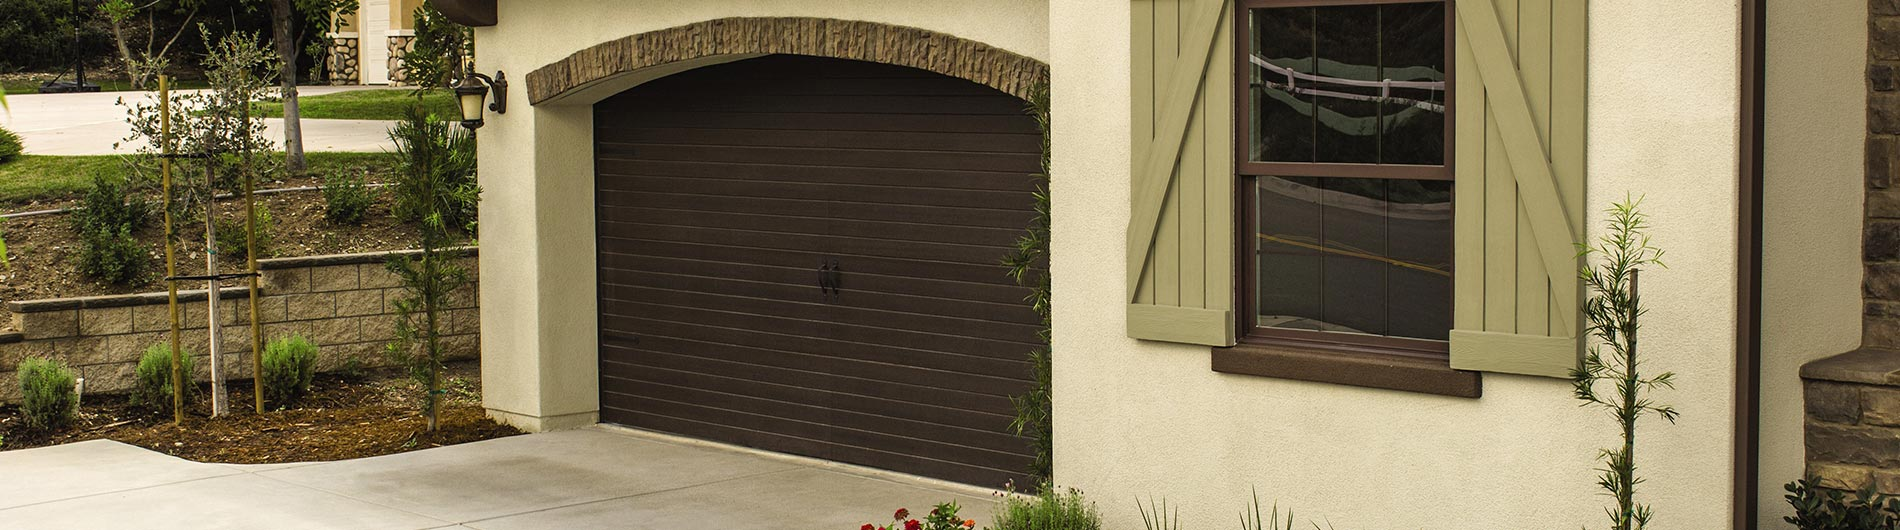 residential garage fiberglass roll doors up